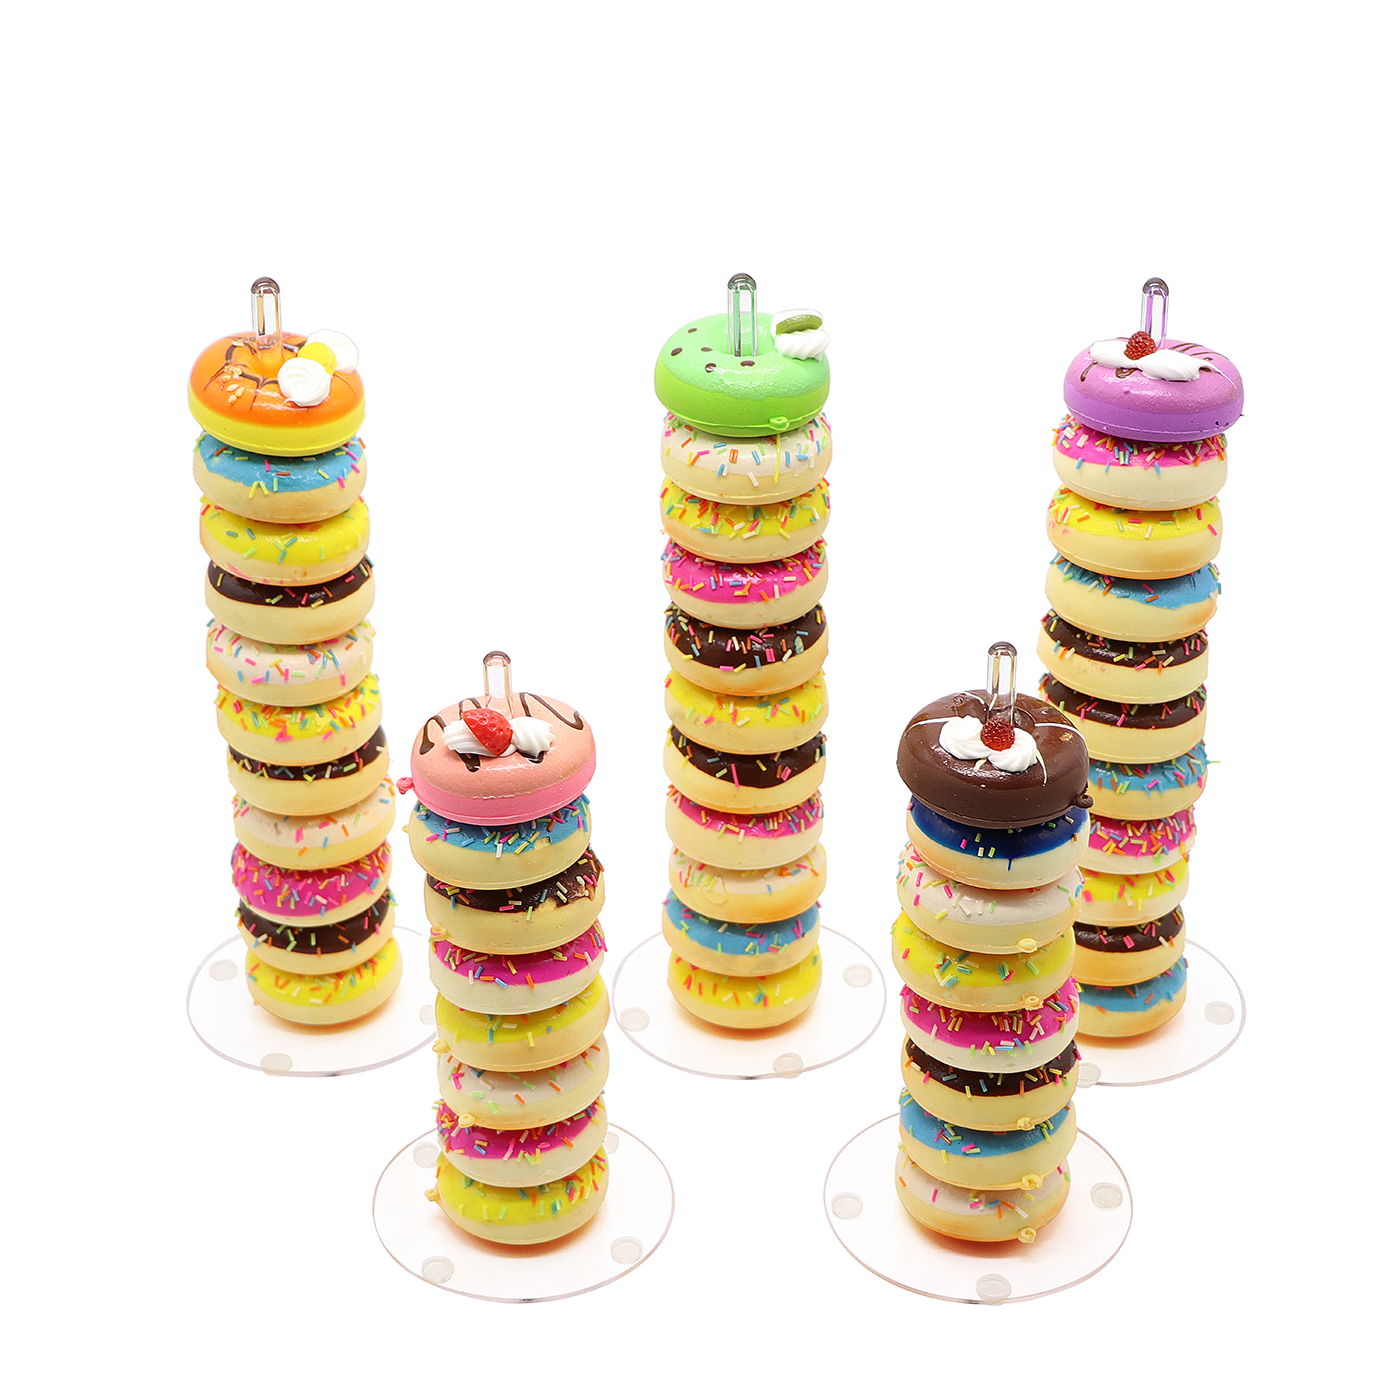 Acrylic Donut Stands Display Clear Bagels Doughnut Holder for Wedding Birthday Party Treat 5 pieces